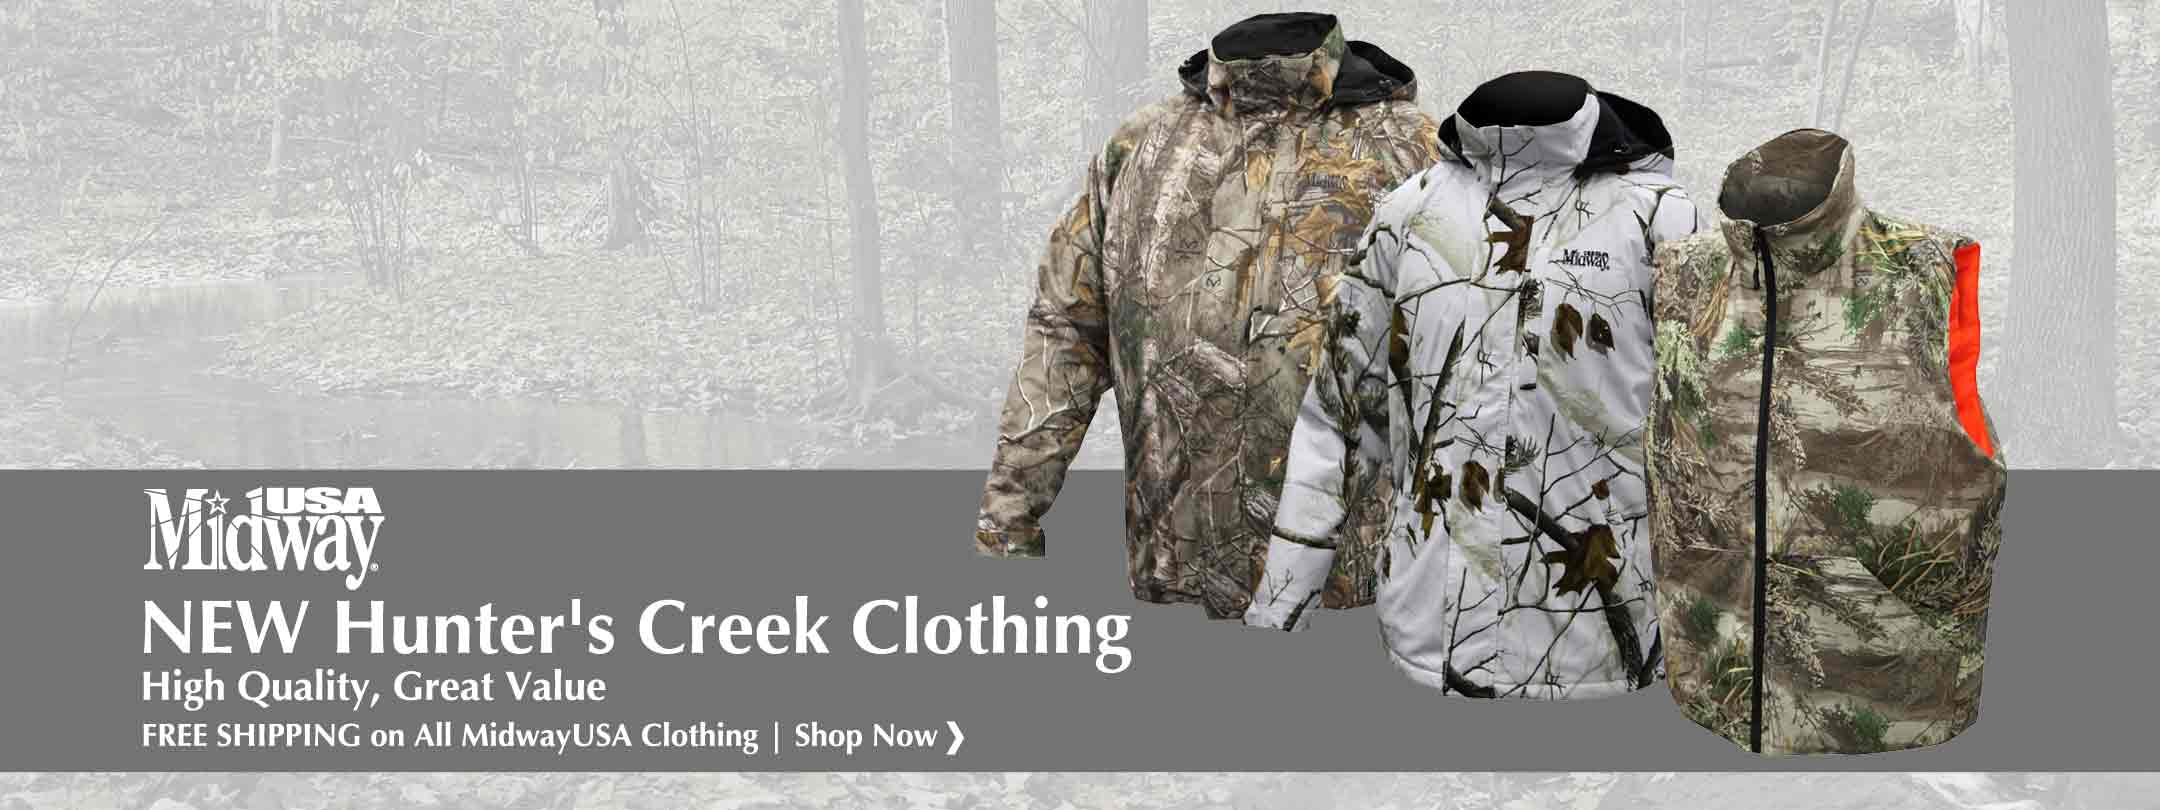 NEW Hunter's Creek Clothing: High Quality, Great Value